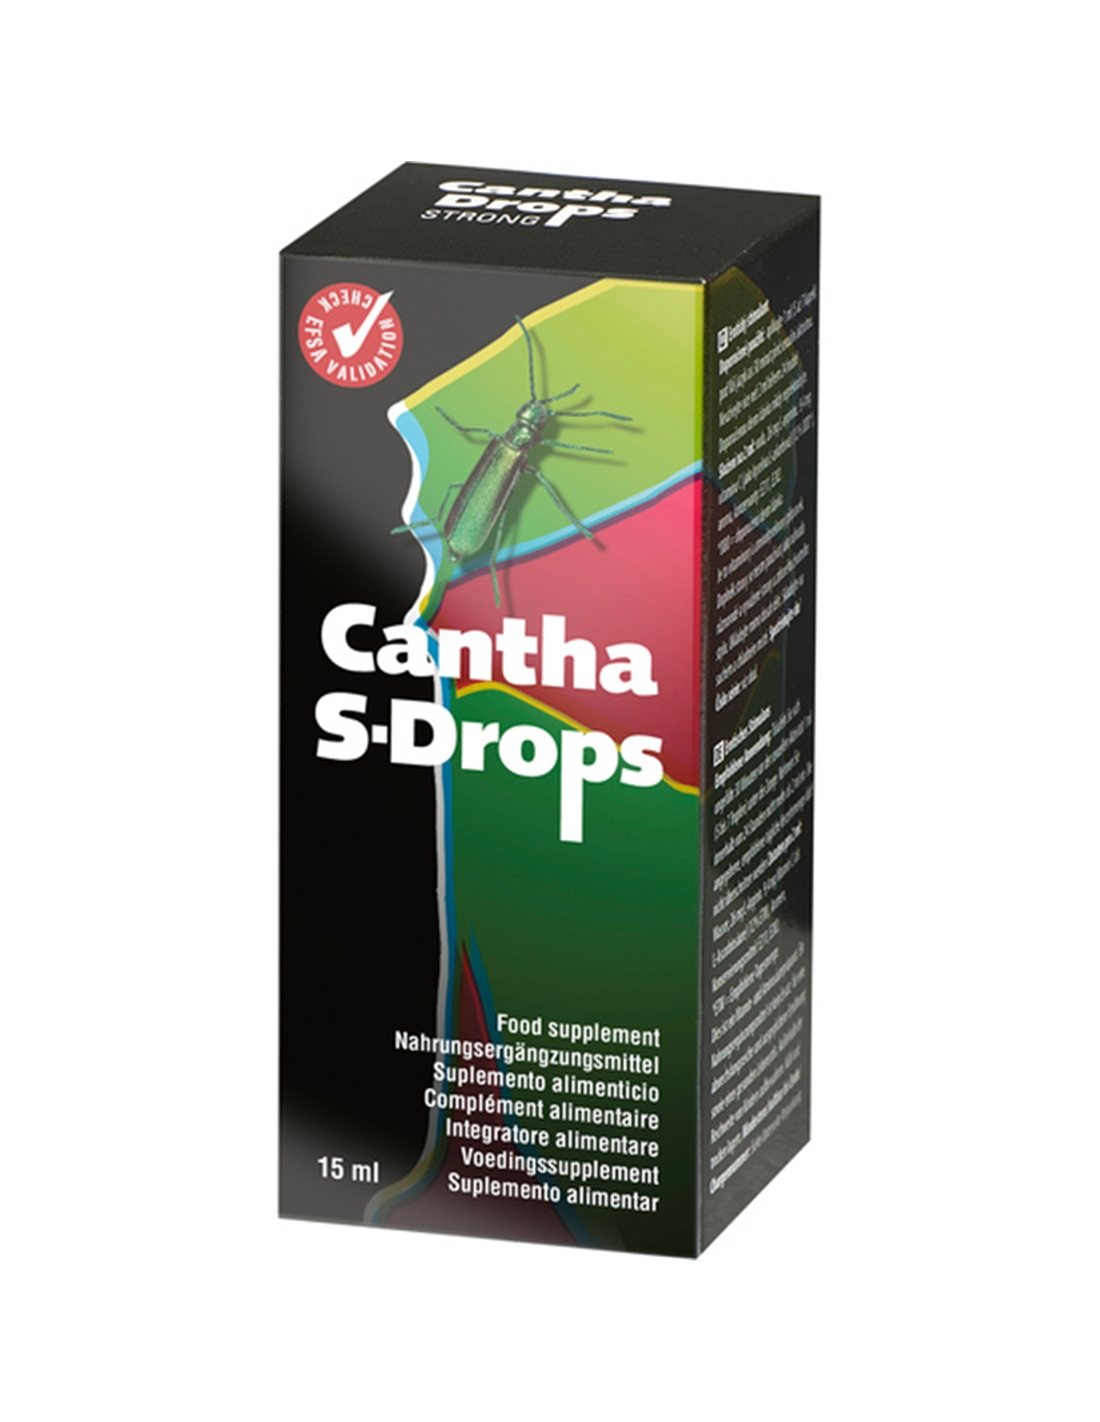 Gotas Cantha Drops Strong - 15ml - PR2010319701